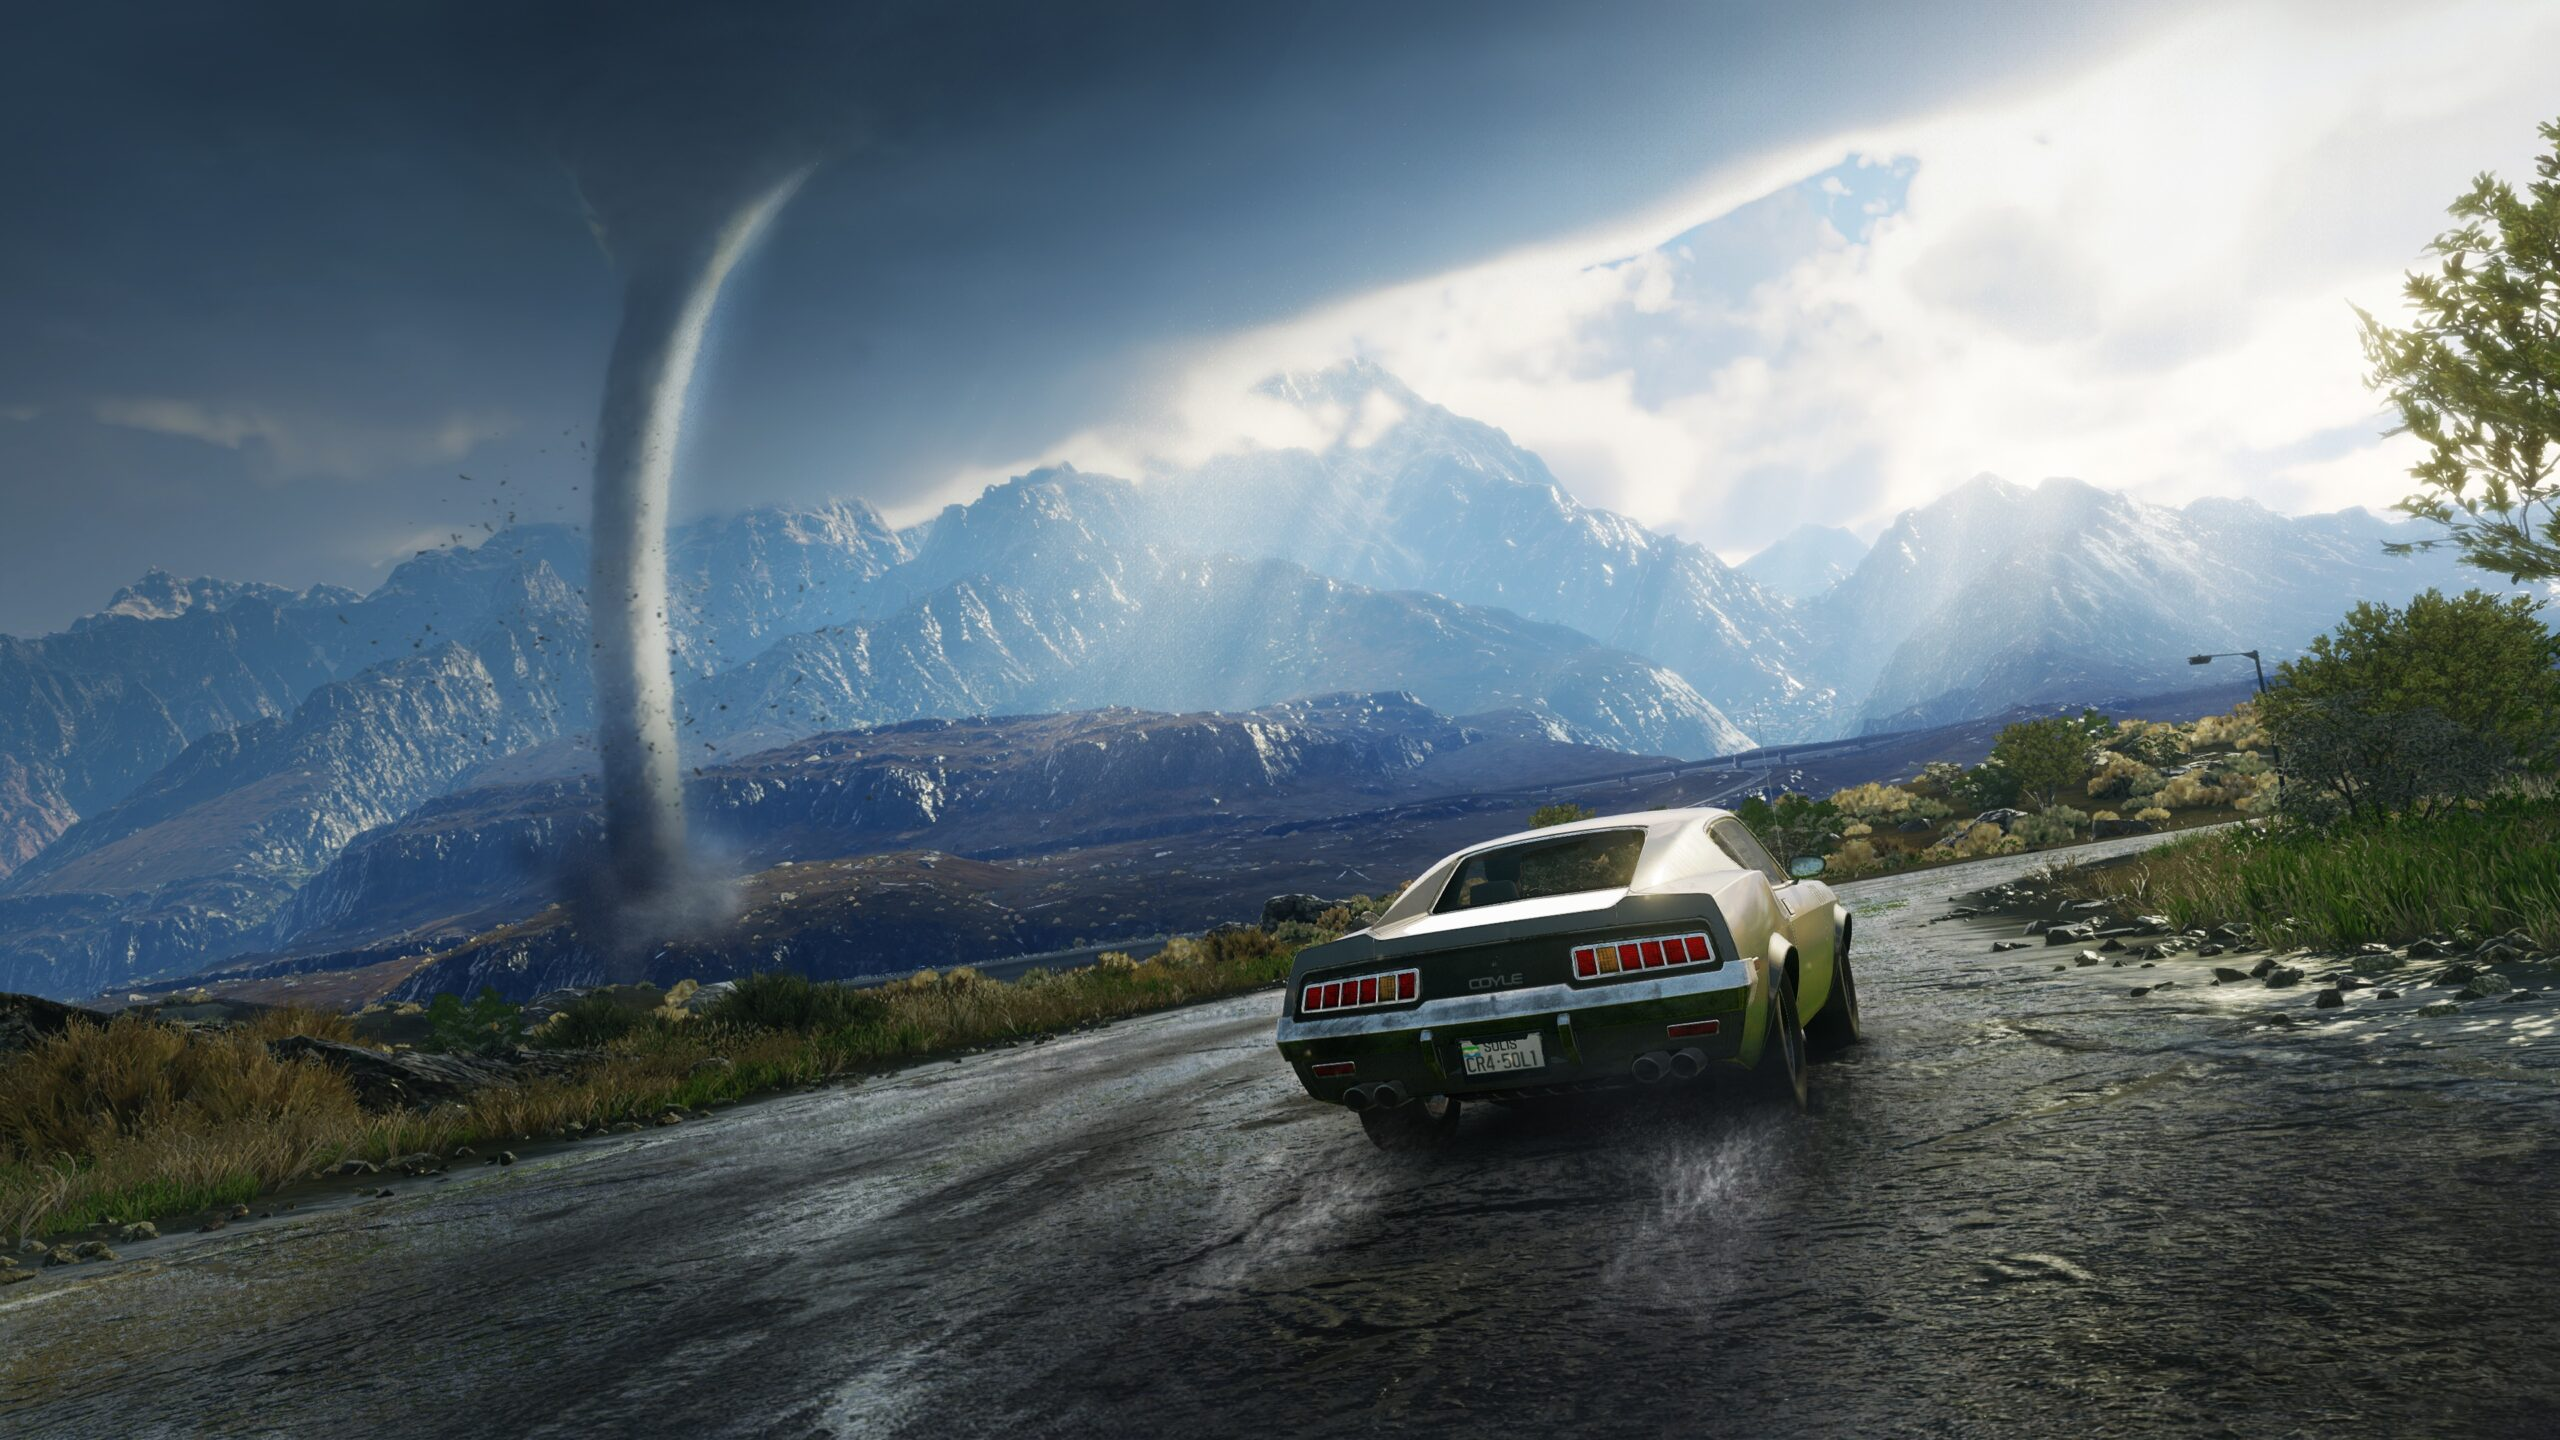 Just Cause 4 (Oyun İncelemesi) | Just Cause Tornada scaled